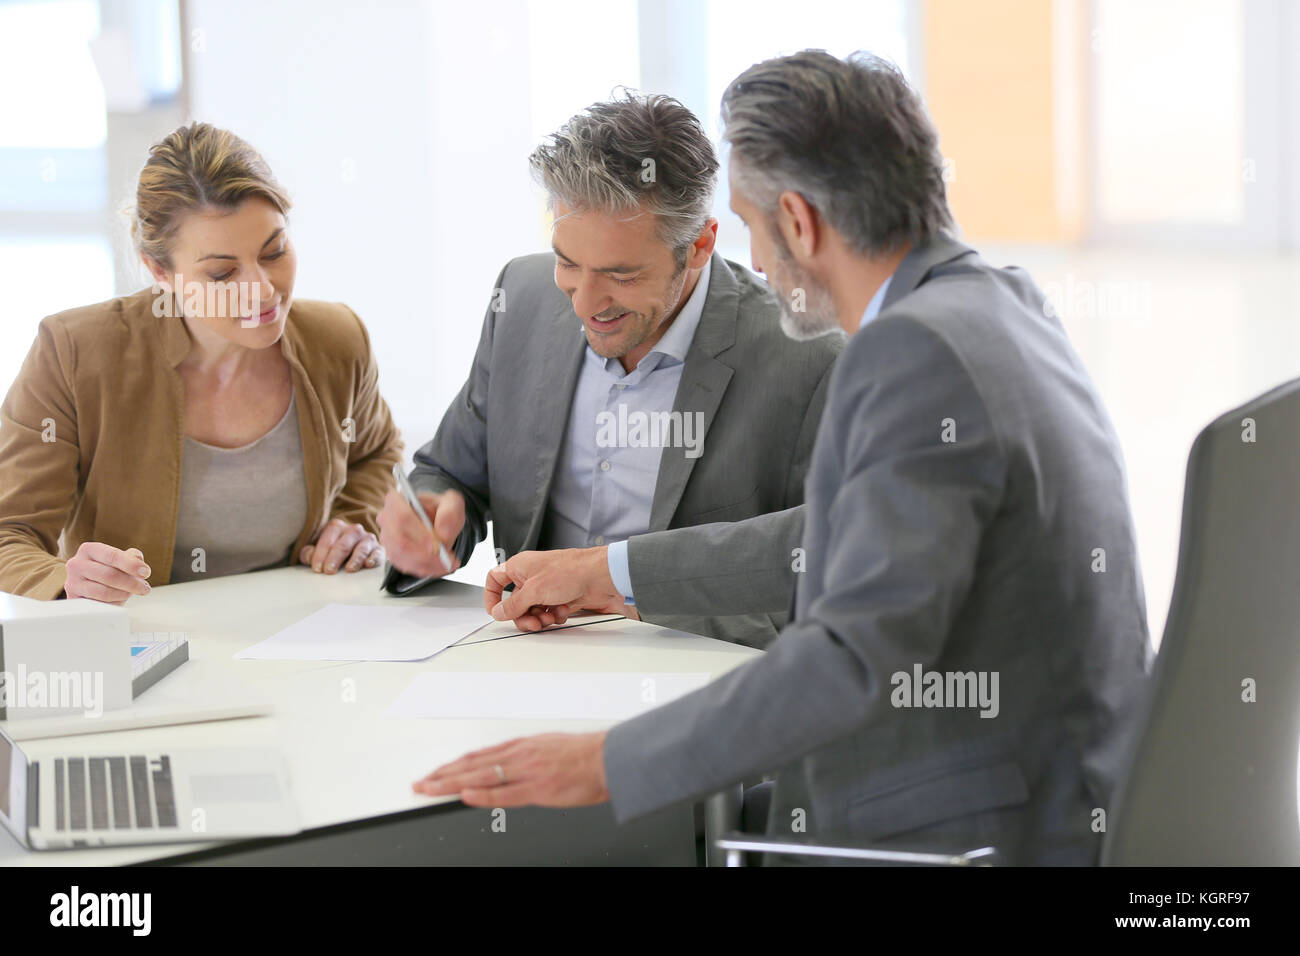 Mature couple signing construction contract in architect's office - Stock Image